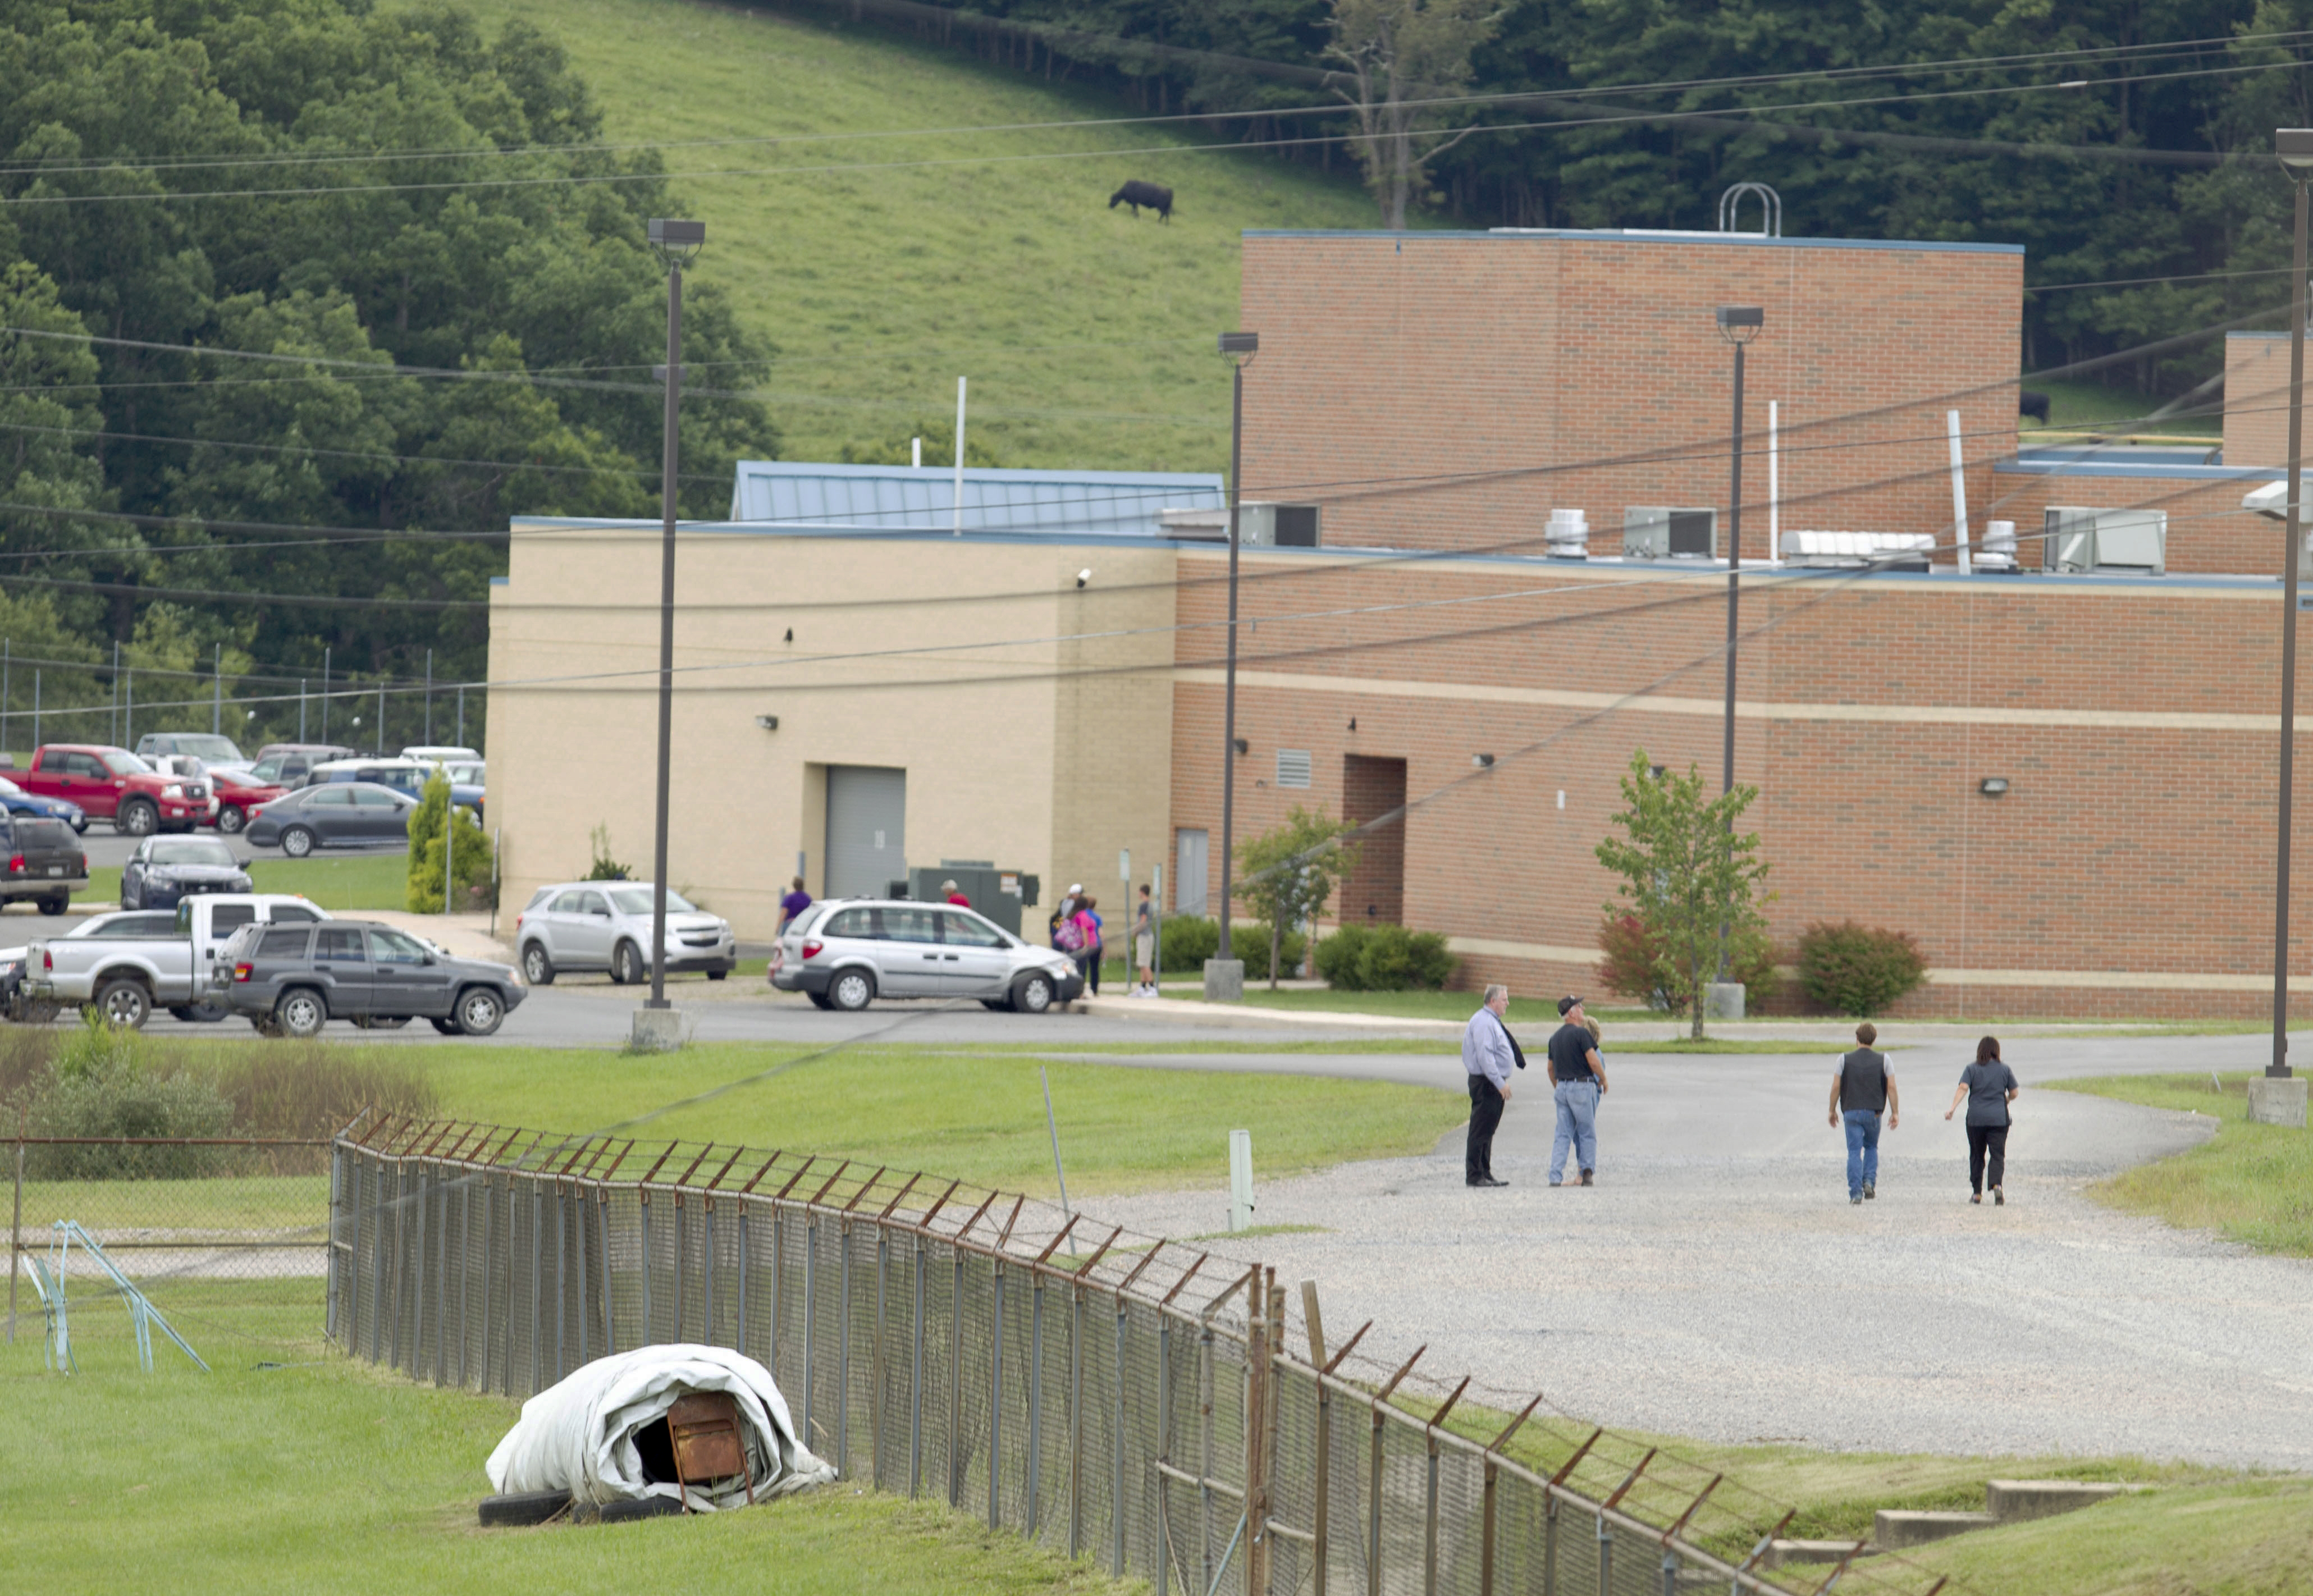 Parents of children from Philip Barbour High School in Philippi, W.Va., walk to the school to meet up with their children that were evacuated after a  hostage-like  situation occurred in the school on Aug. 25, 2015.